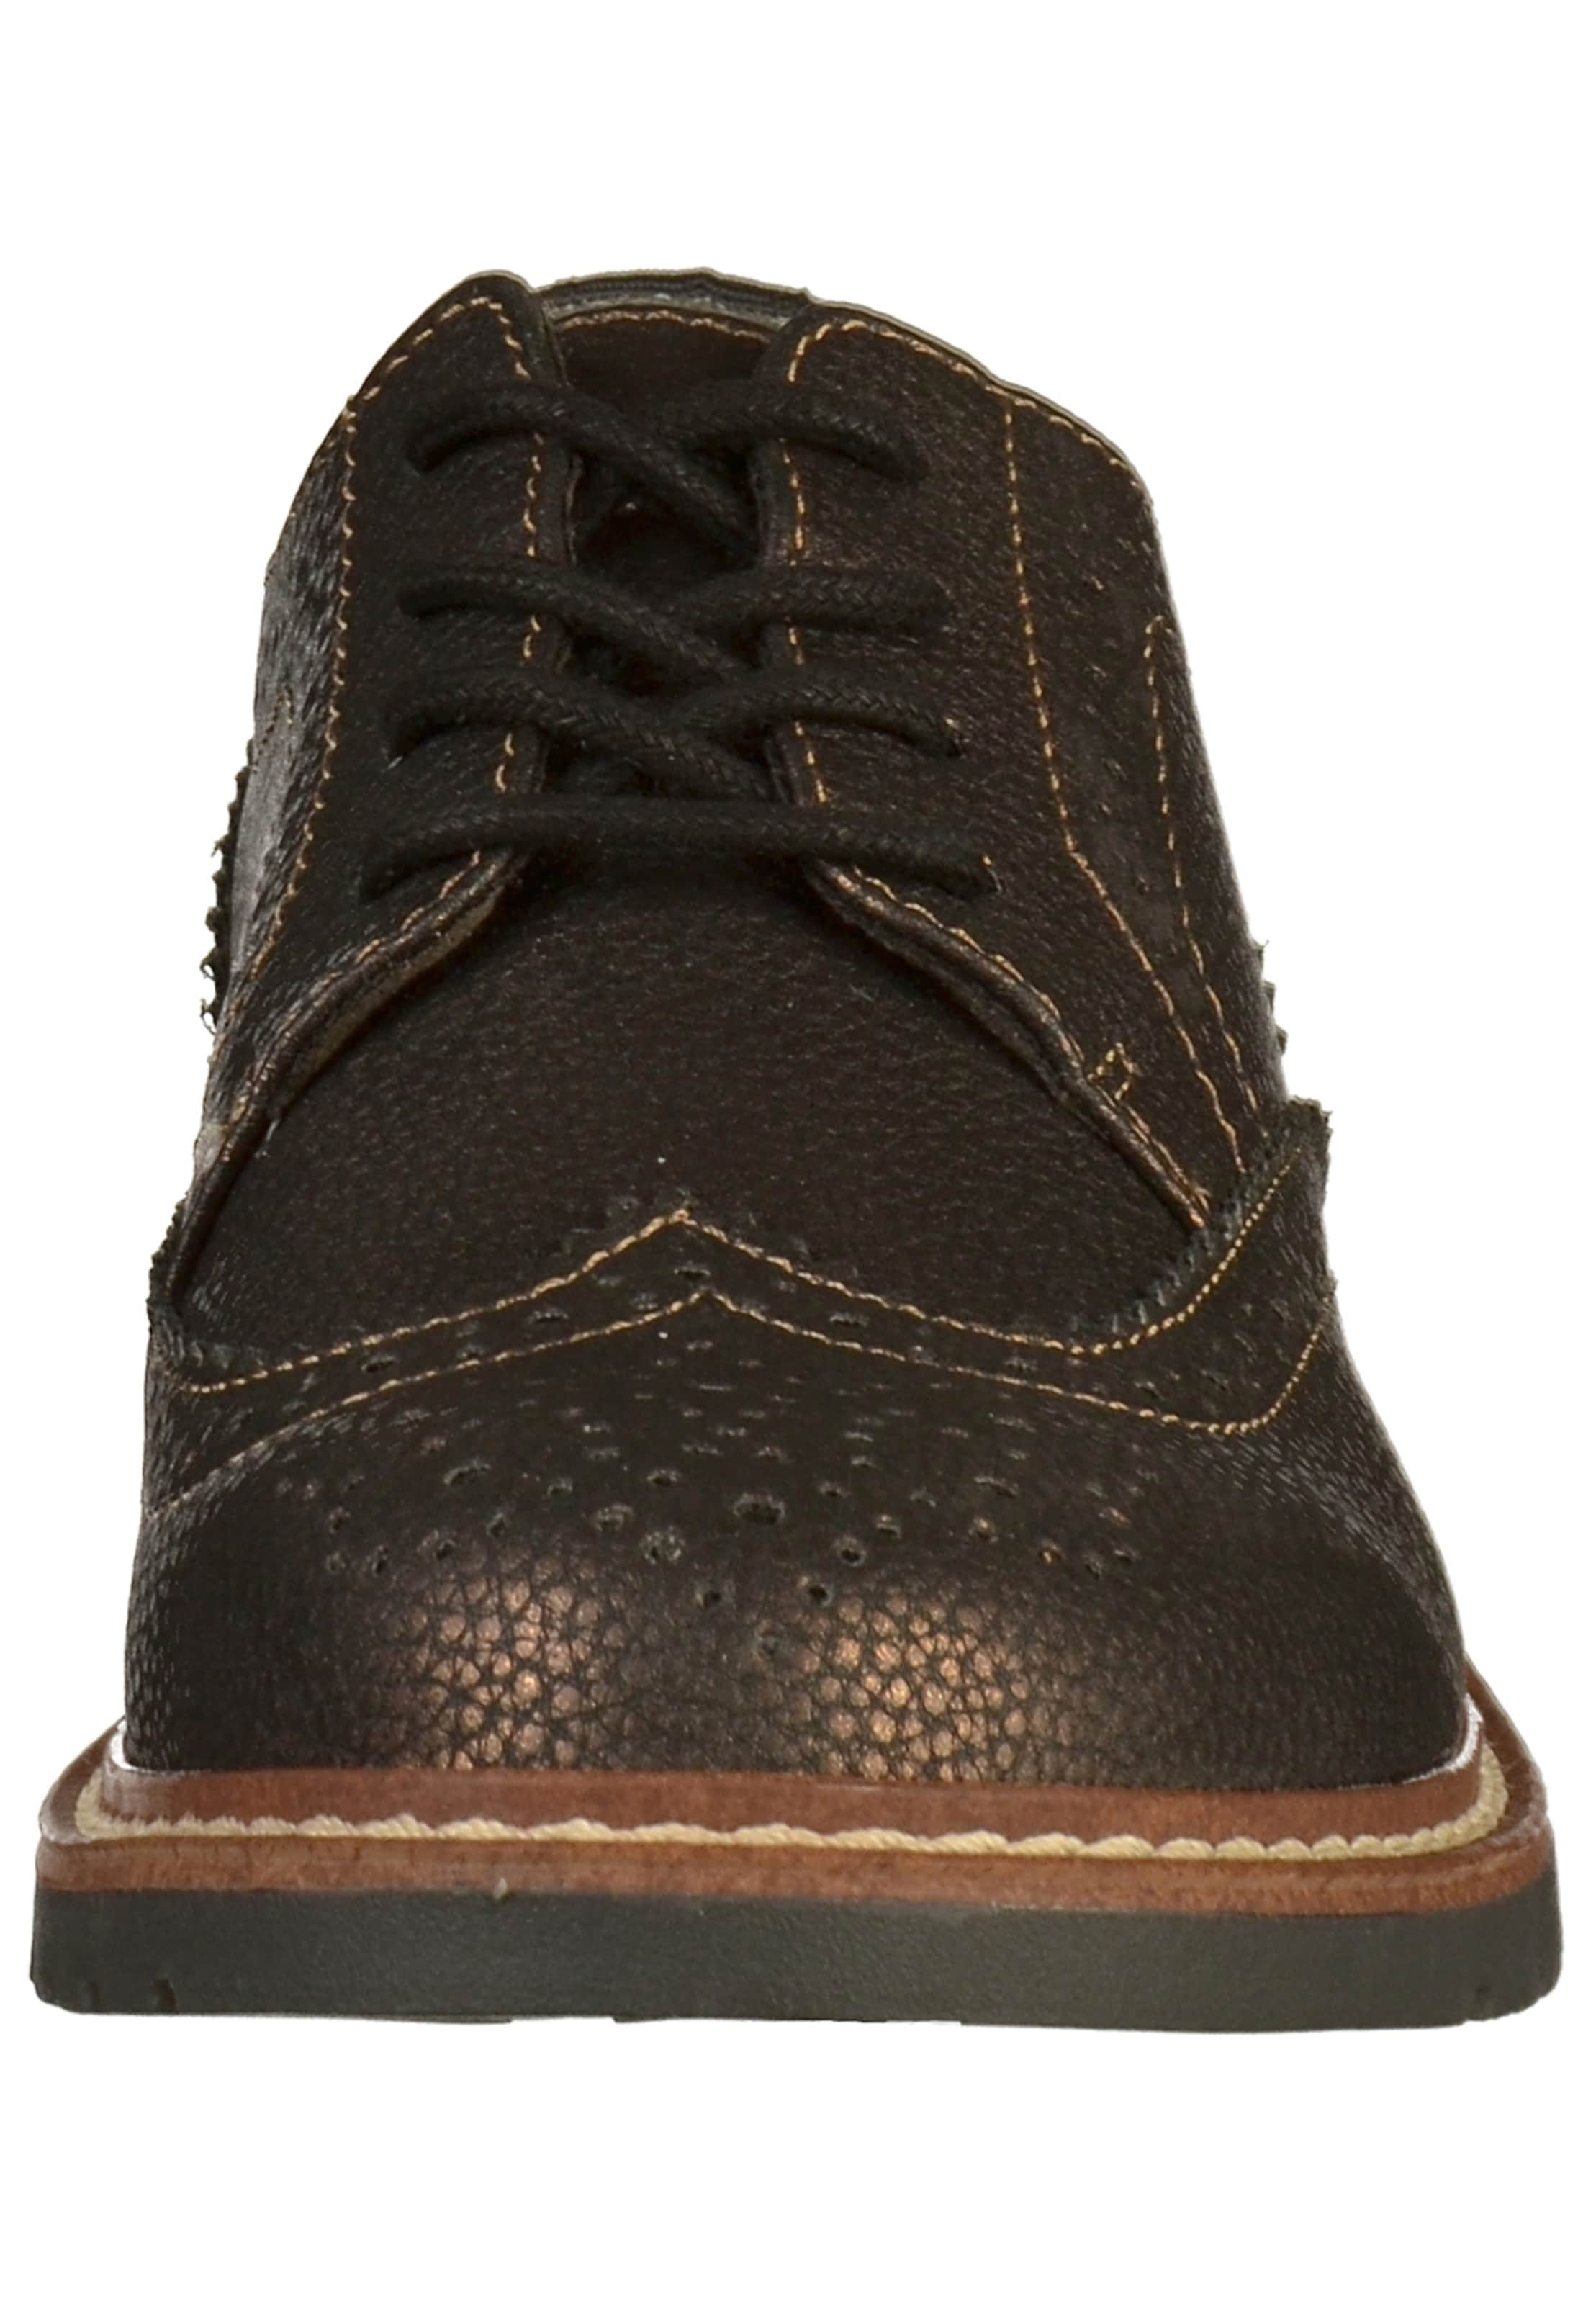 En oliver À Red Lacets Marron Chaussure S Label bfy6gY7